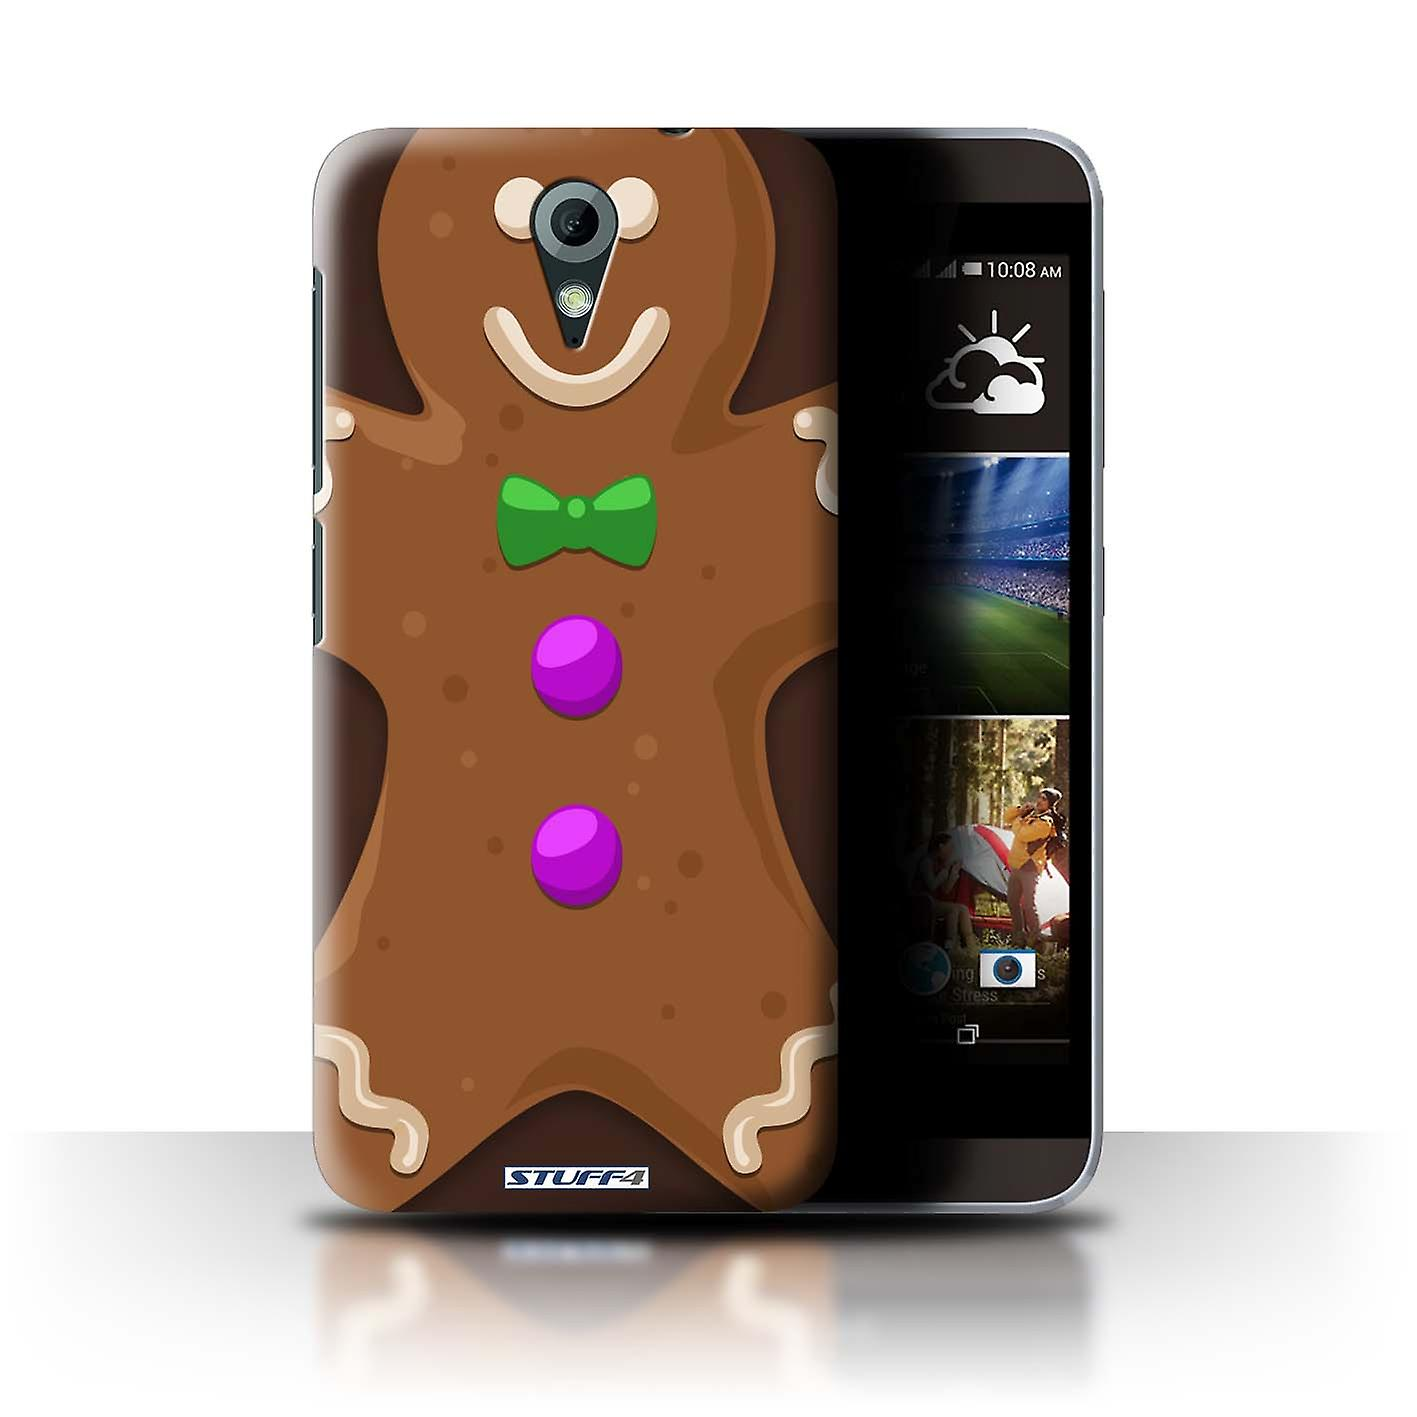 STUFF4 Case/Cover for HTC Desire 820 Mini/Gingerbread Man/Christmas Character